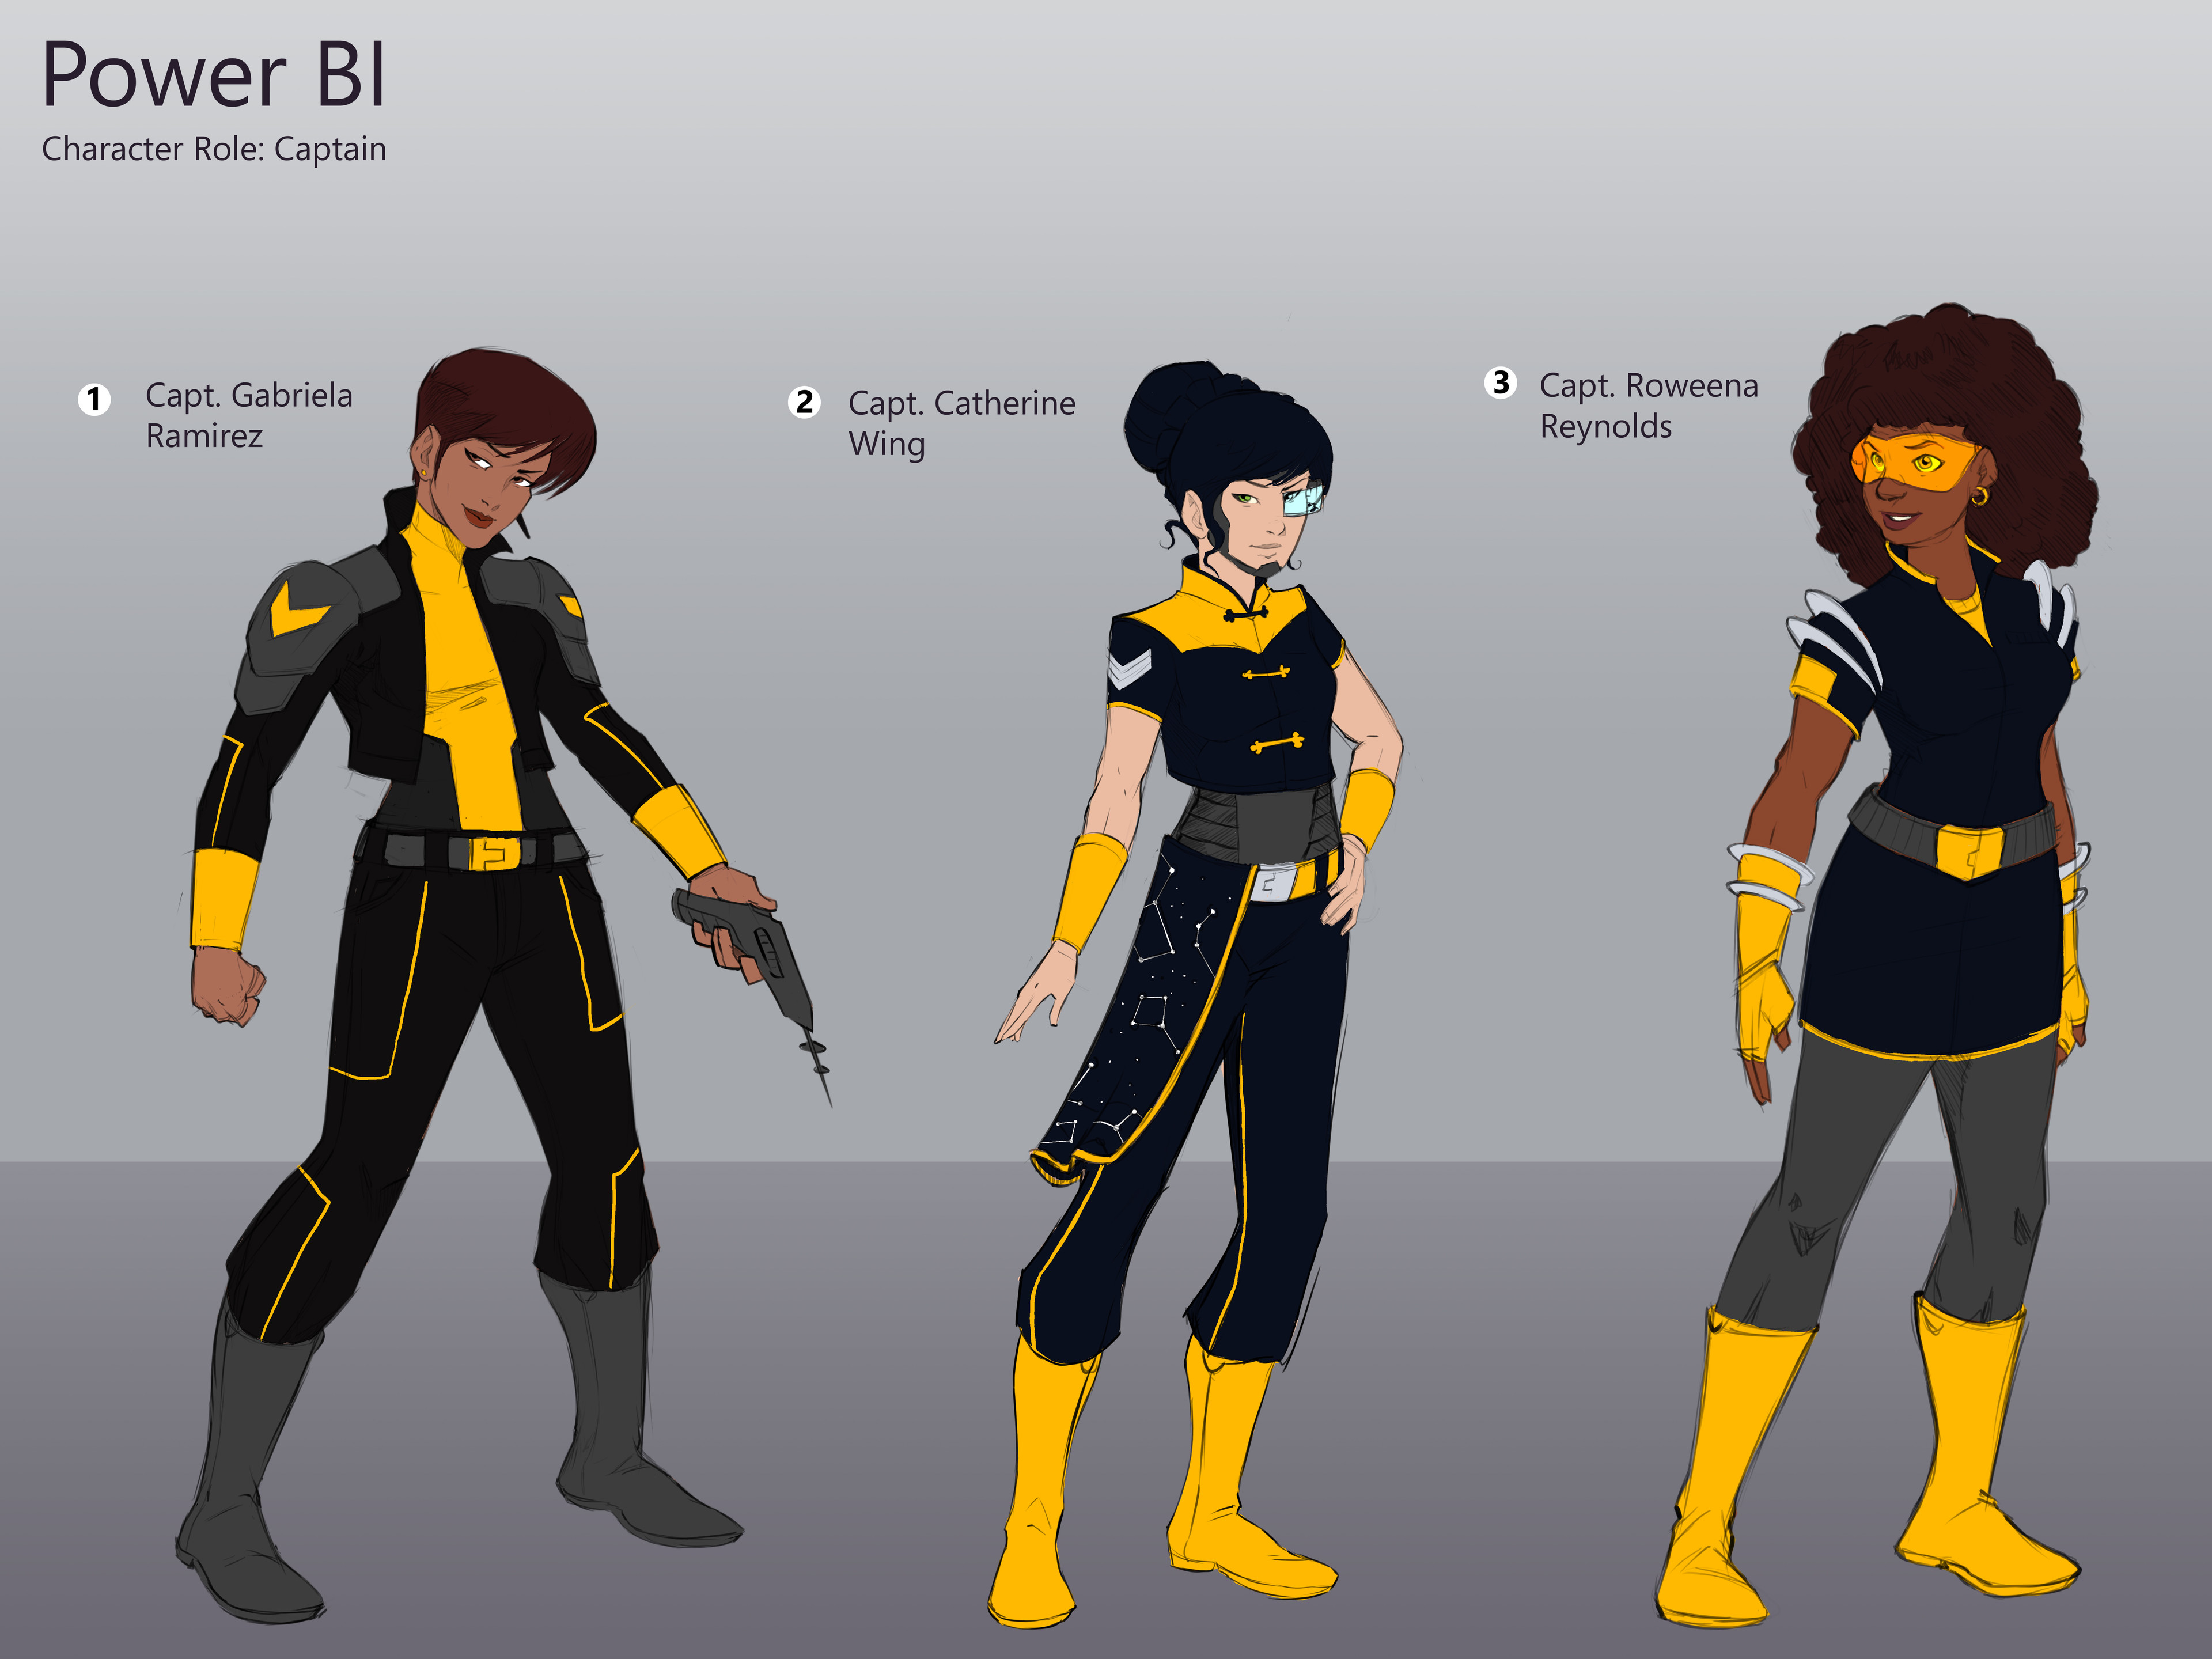 Refined character designs and color flats based on the Power BI branding guide